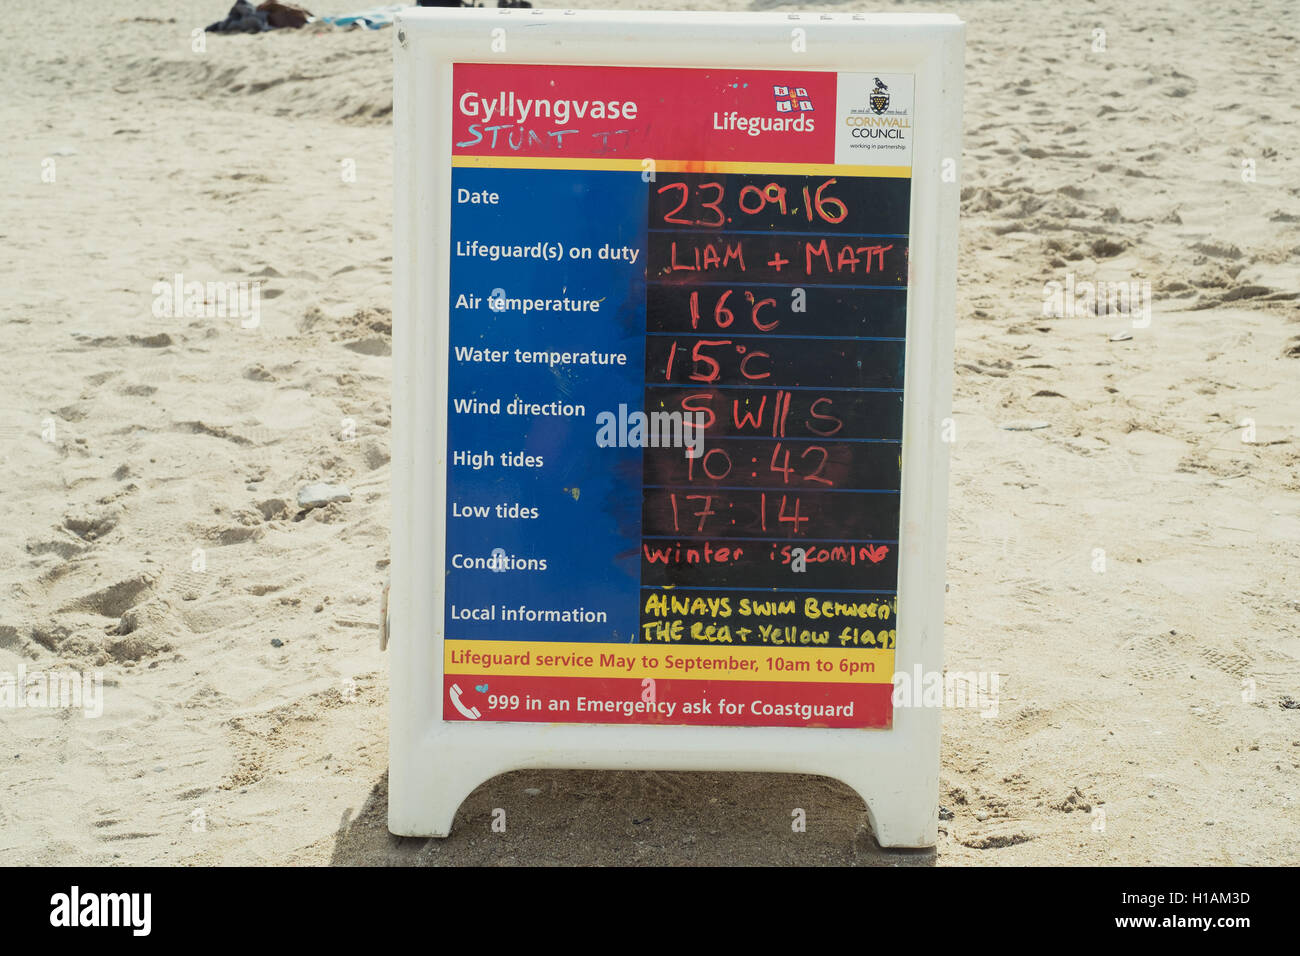 Gyllyngvase Beach, Falmouth, UK. 23rd September, 2016. Winter is coming - cheeky comment on todays RNLI Lifeguards - Stock Image